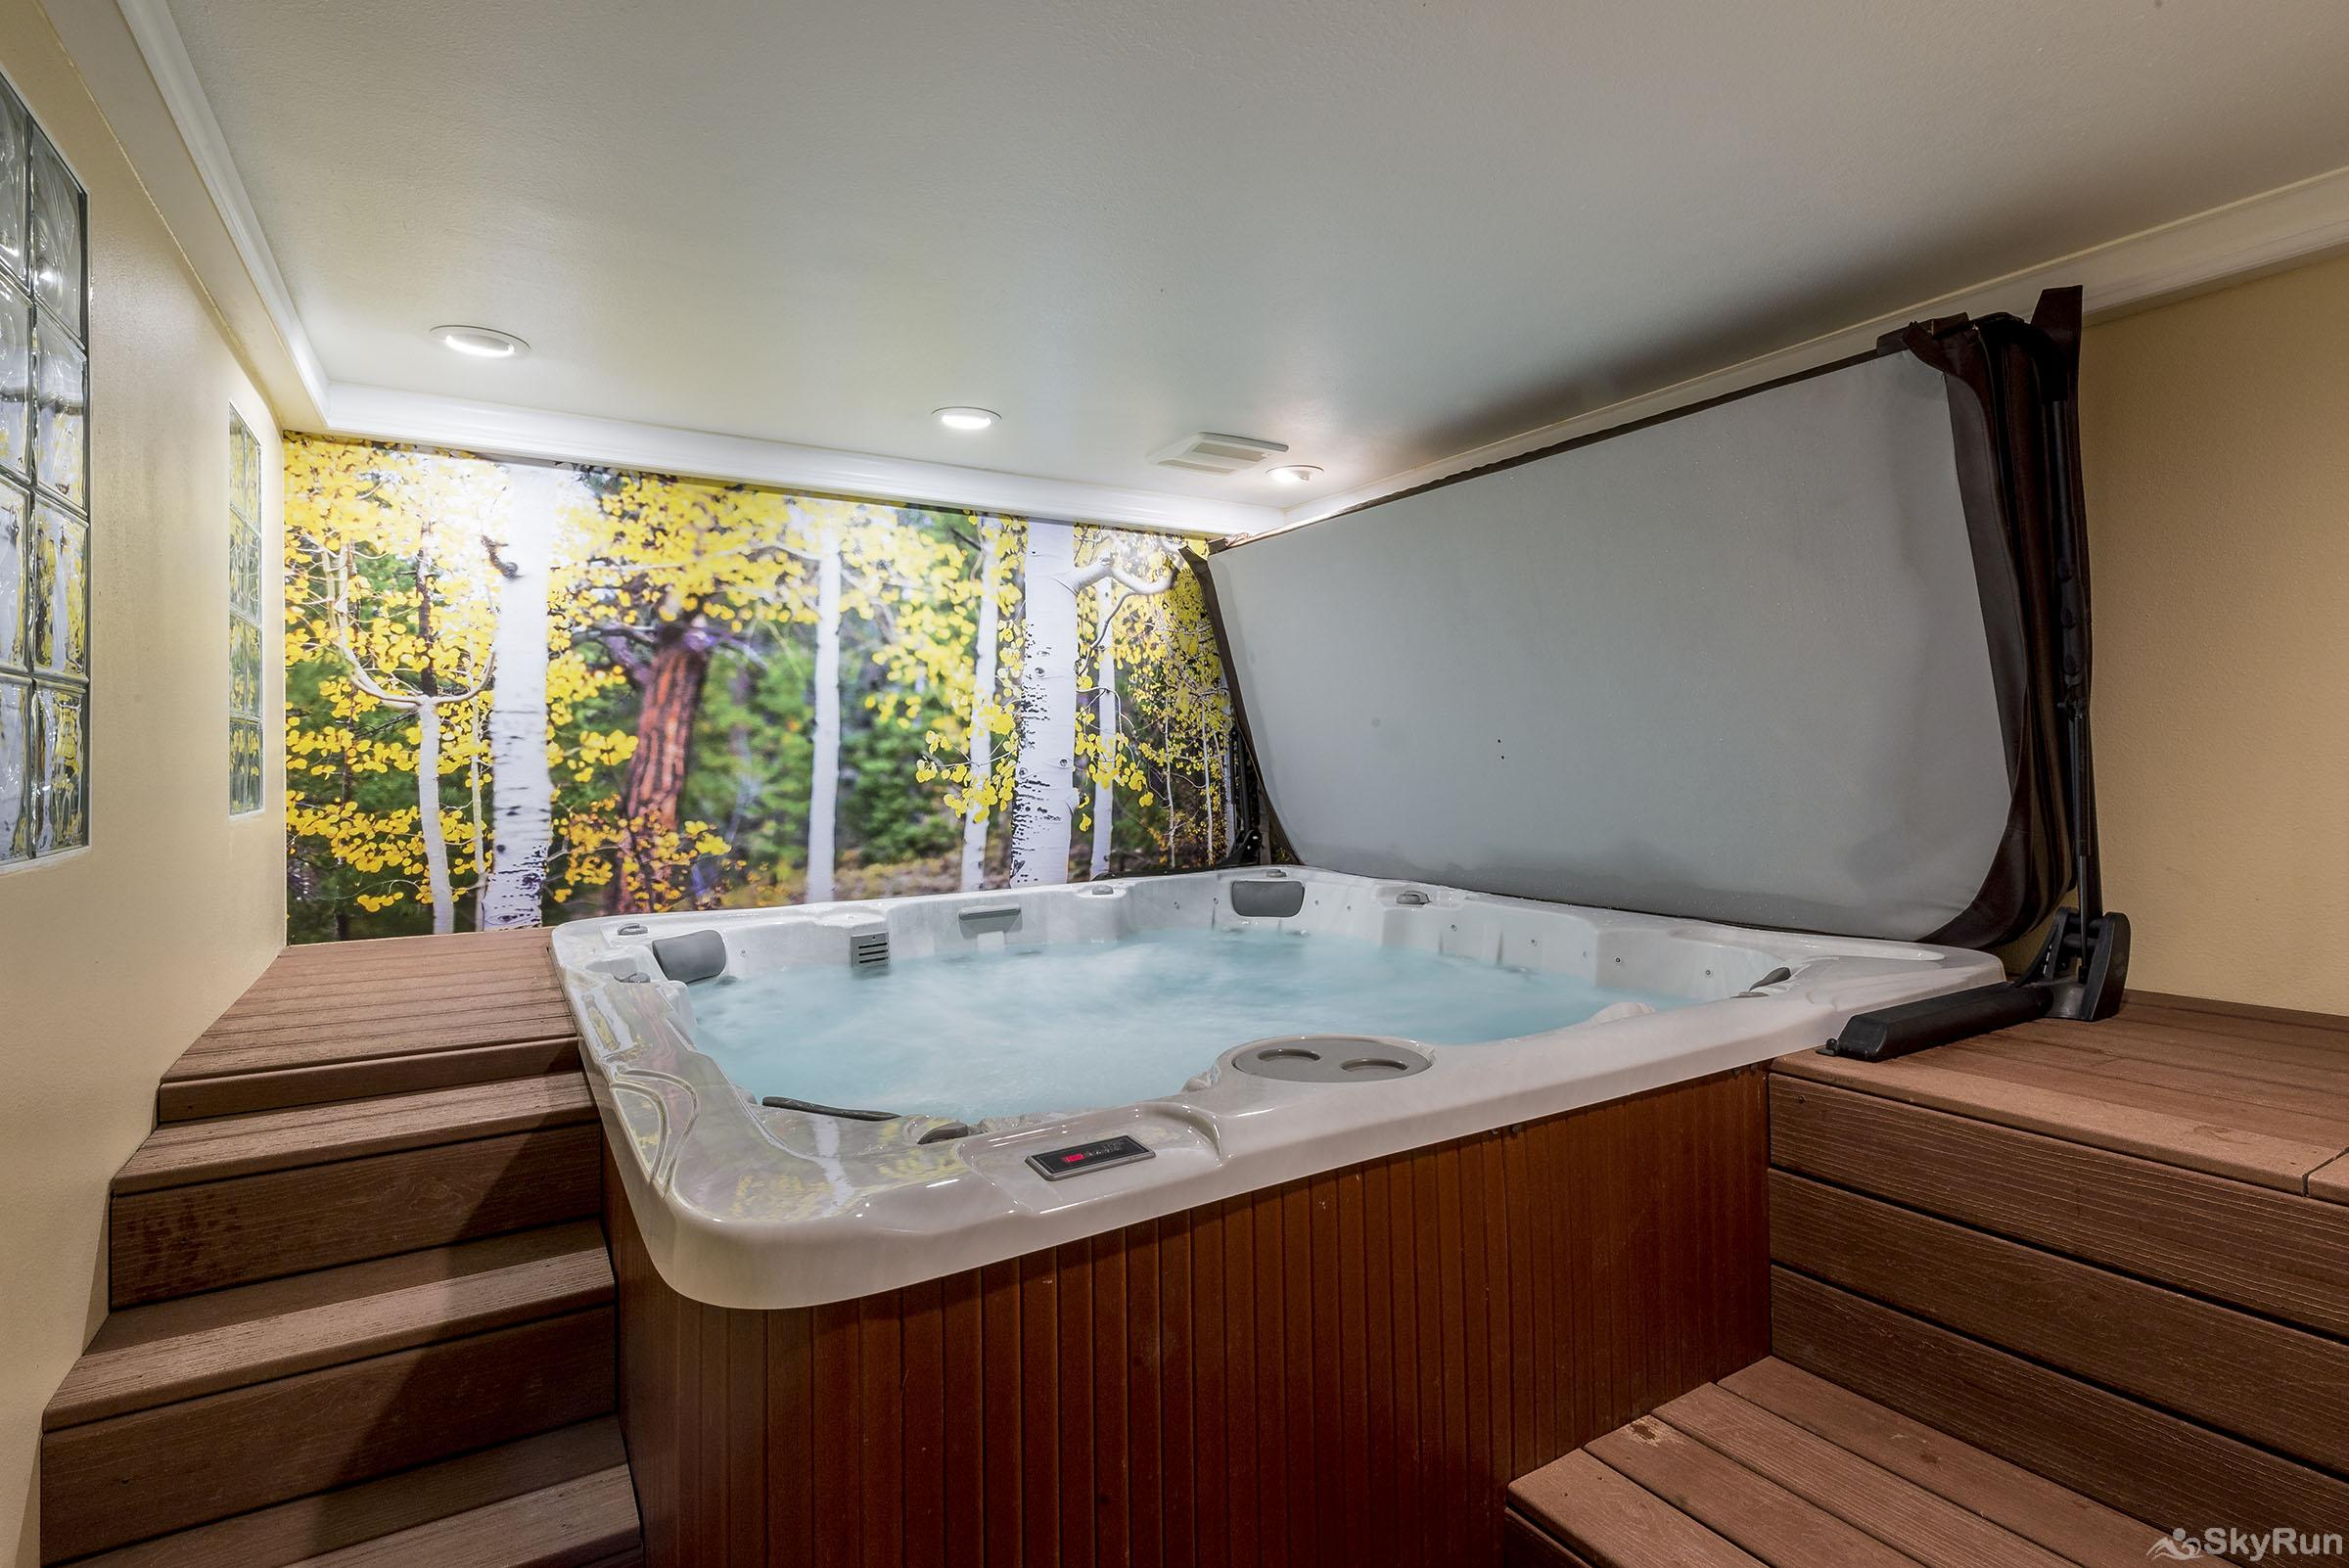 Waterford 10 Enjoy this brand new 8ft indoor hot tub.